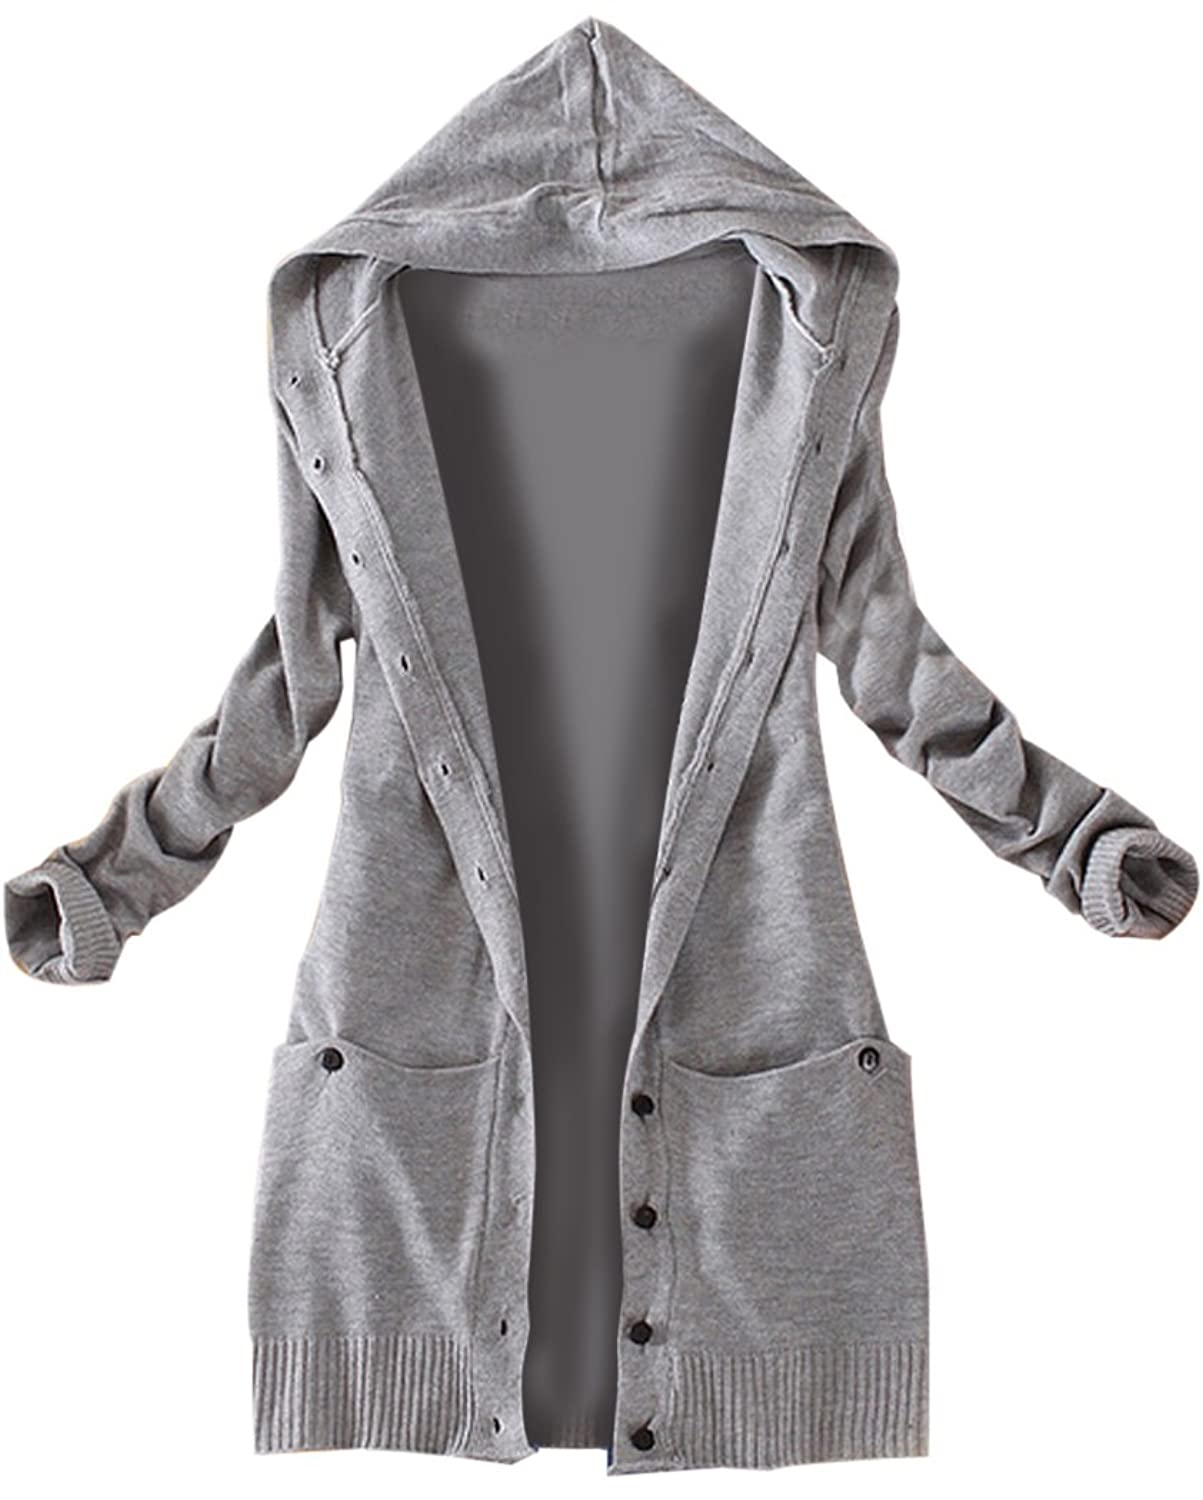 Amazon.com: Korean Women's Casual Long-sleeved Knitted Hooded ...